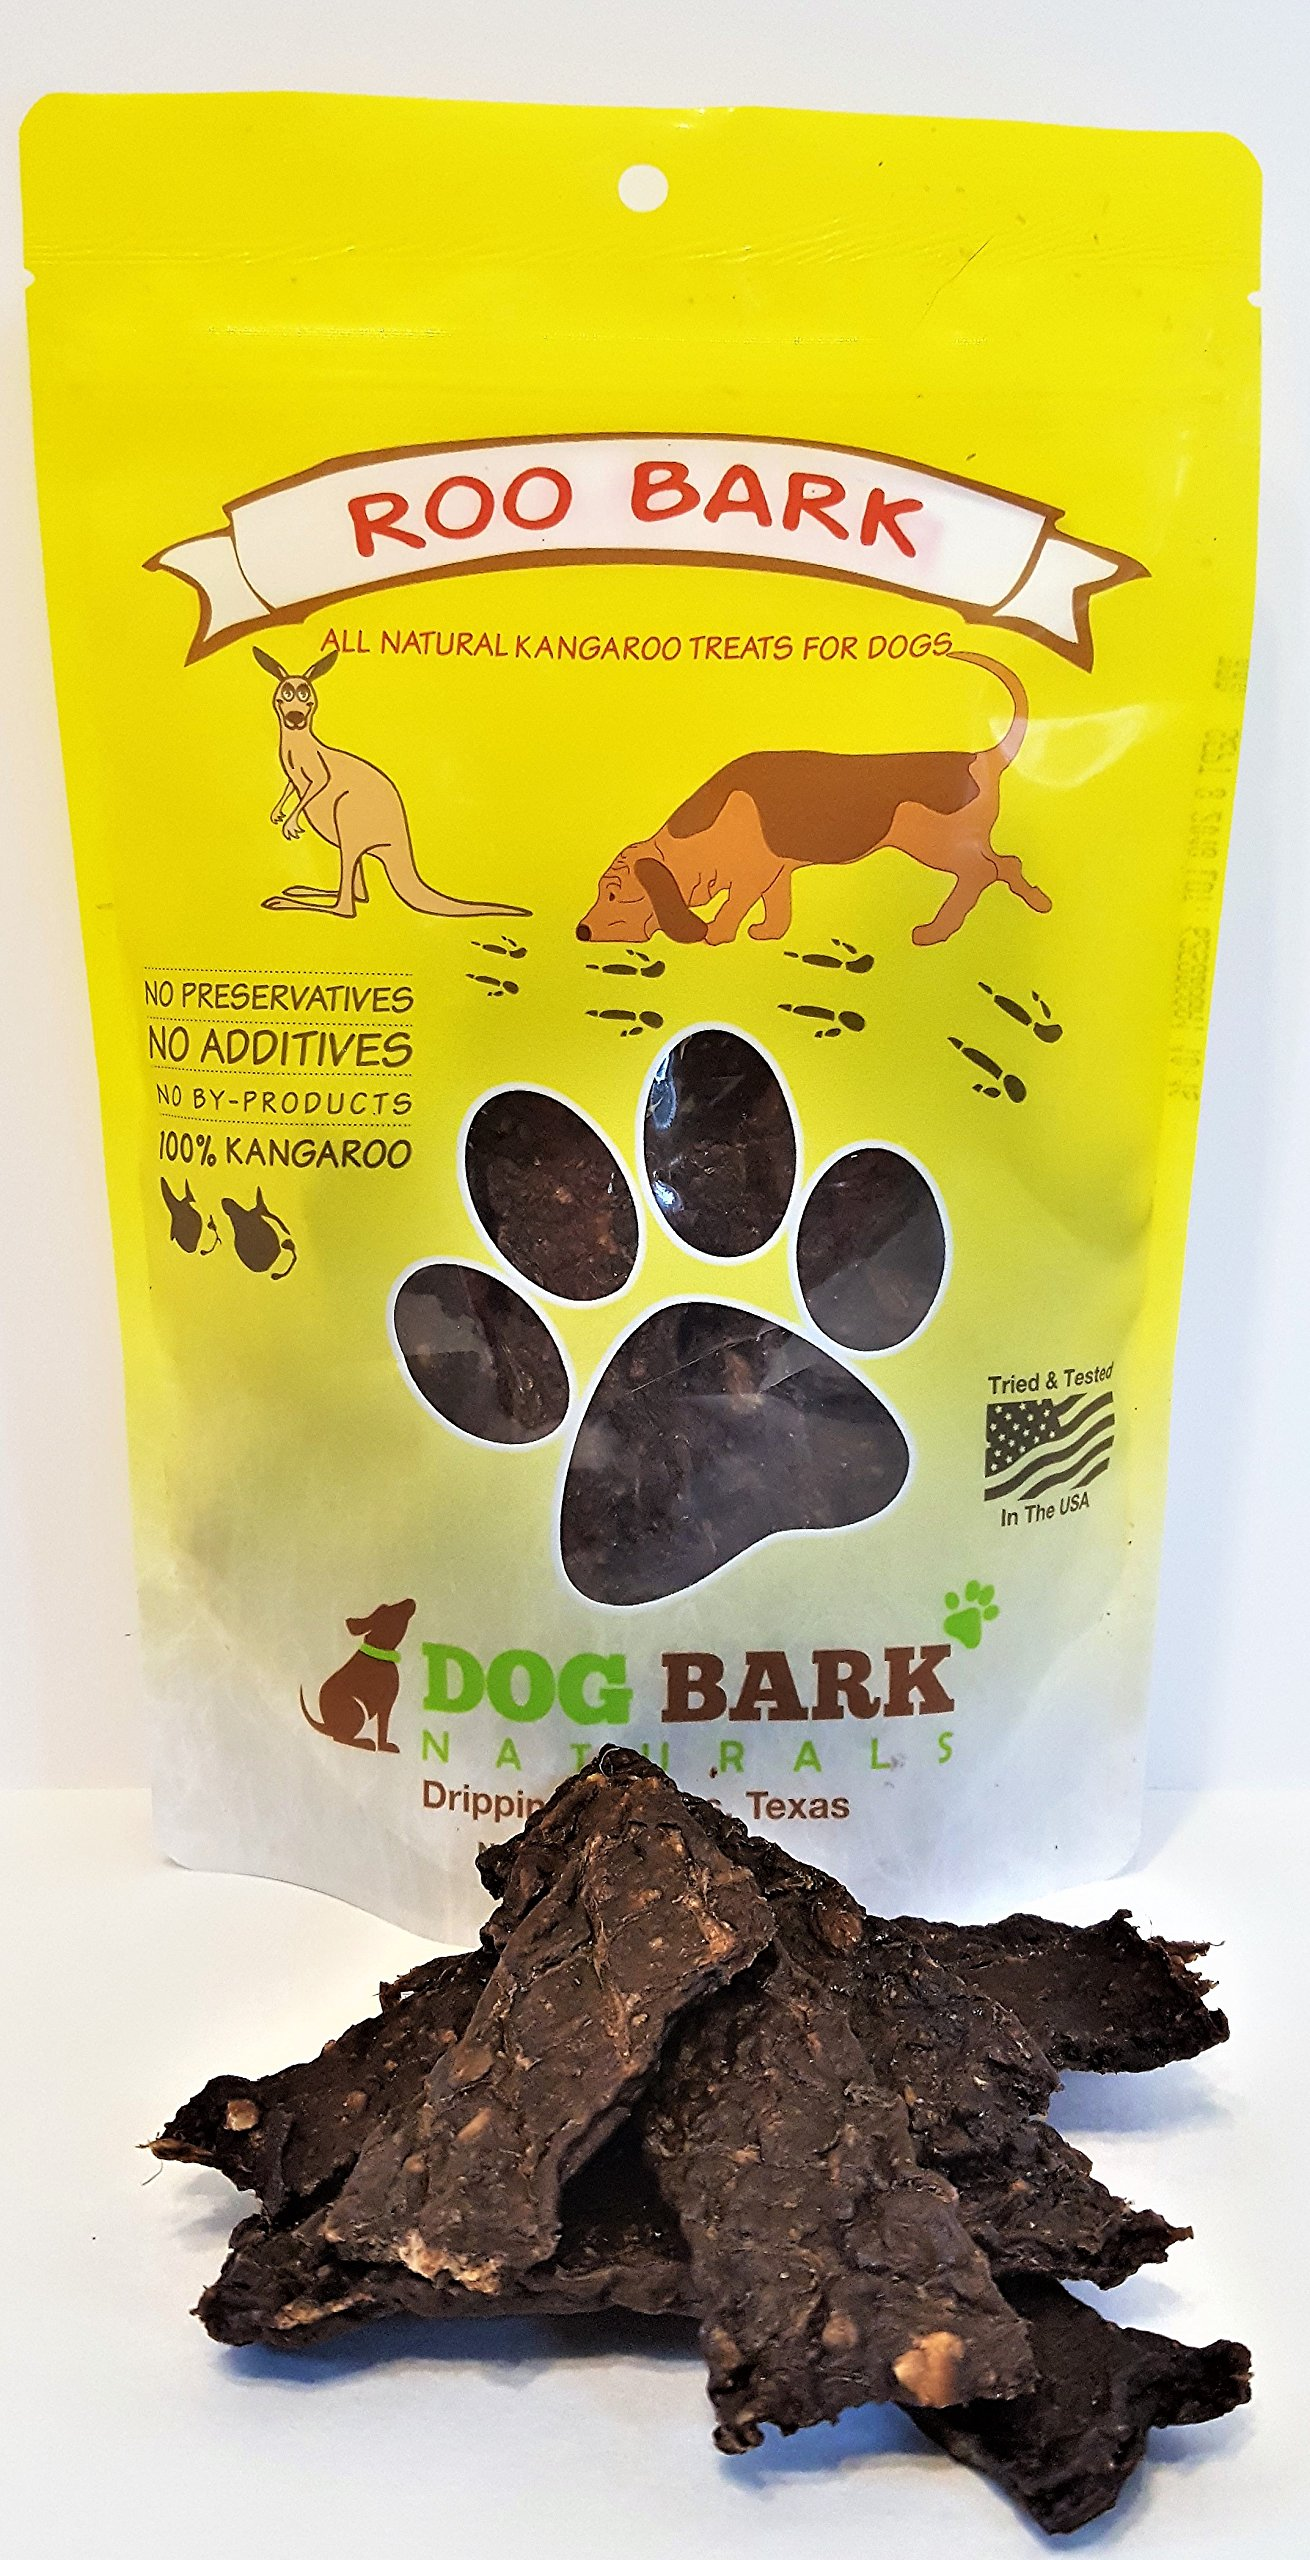 Roo Bark - As Natural As It Gets - 1 Ingredient!!! Responsibly Source In Australia and Made USA, Portion Of All Proceeds Donated To Dogs In Need